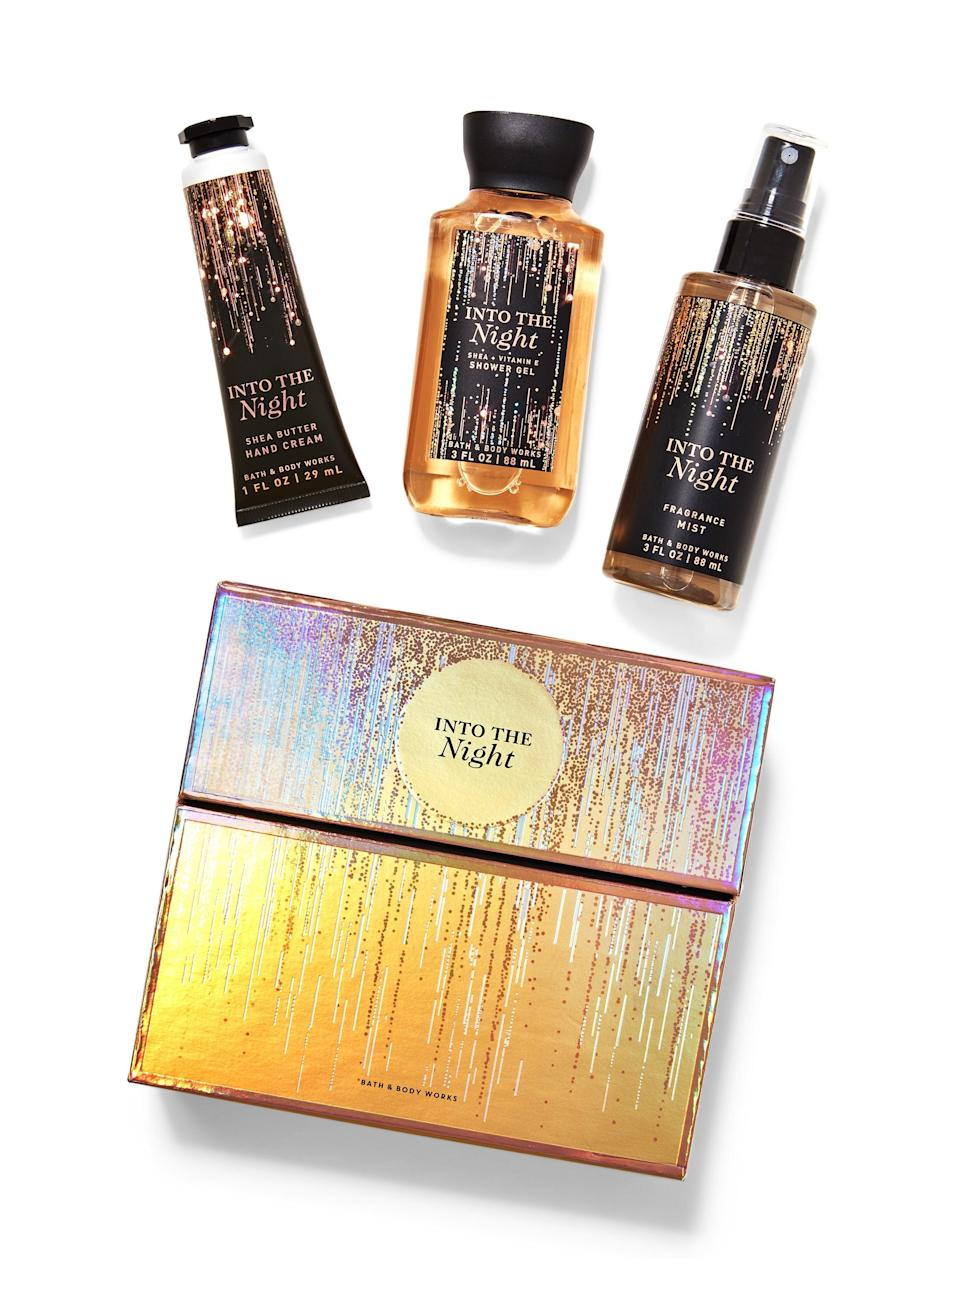 """<h3>Into The Night Mini Gift Box Set</h3><br>Maybe you're looking for a birthday gift for the <a href=""""https://www.refinery29.com/en-us/scorpio-zodiac-sign-characteristics-personality-traits"""" rel=""""nofollow noopener"""" target=""""_blank"""" data-ylk=""""slk:Scorpio"""" class=""""link rapid-noclick-resp"""">Scorpio</a> in your life. If you're stuck, this fragrance bath set looks super chic — more expensive than its $16 price tag — and the starry theme makes it fitting for any kind of celebratory occasion. <br><br><strong>Bath & Body Works</strong> INTO THE NIGHT Mini Gift Box Set, $, available at <a href=""""https://go.skimresources.com/?id=30283X879131&url=https%3A%2F%2Fwww.bathandbodyworks.com%2Fp%2Finto-the-night-mini-gift-box-set-025138114.html%3Fcgid%3Dgift-sets%23start%3D26"""" rel=""""nofollow noopener"""" target=""""_blank"""" data-ylk=""""slk:Bath & Body Works"""" class=""""link rapid-noclick-resp"""">Bath & Body Works</a>"""